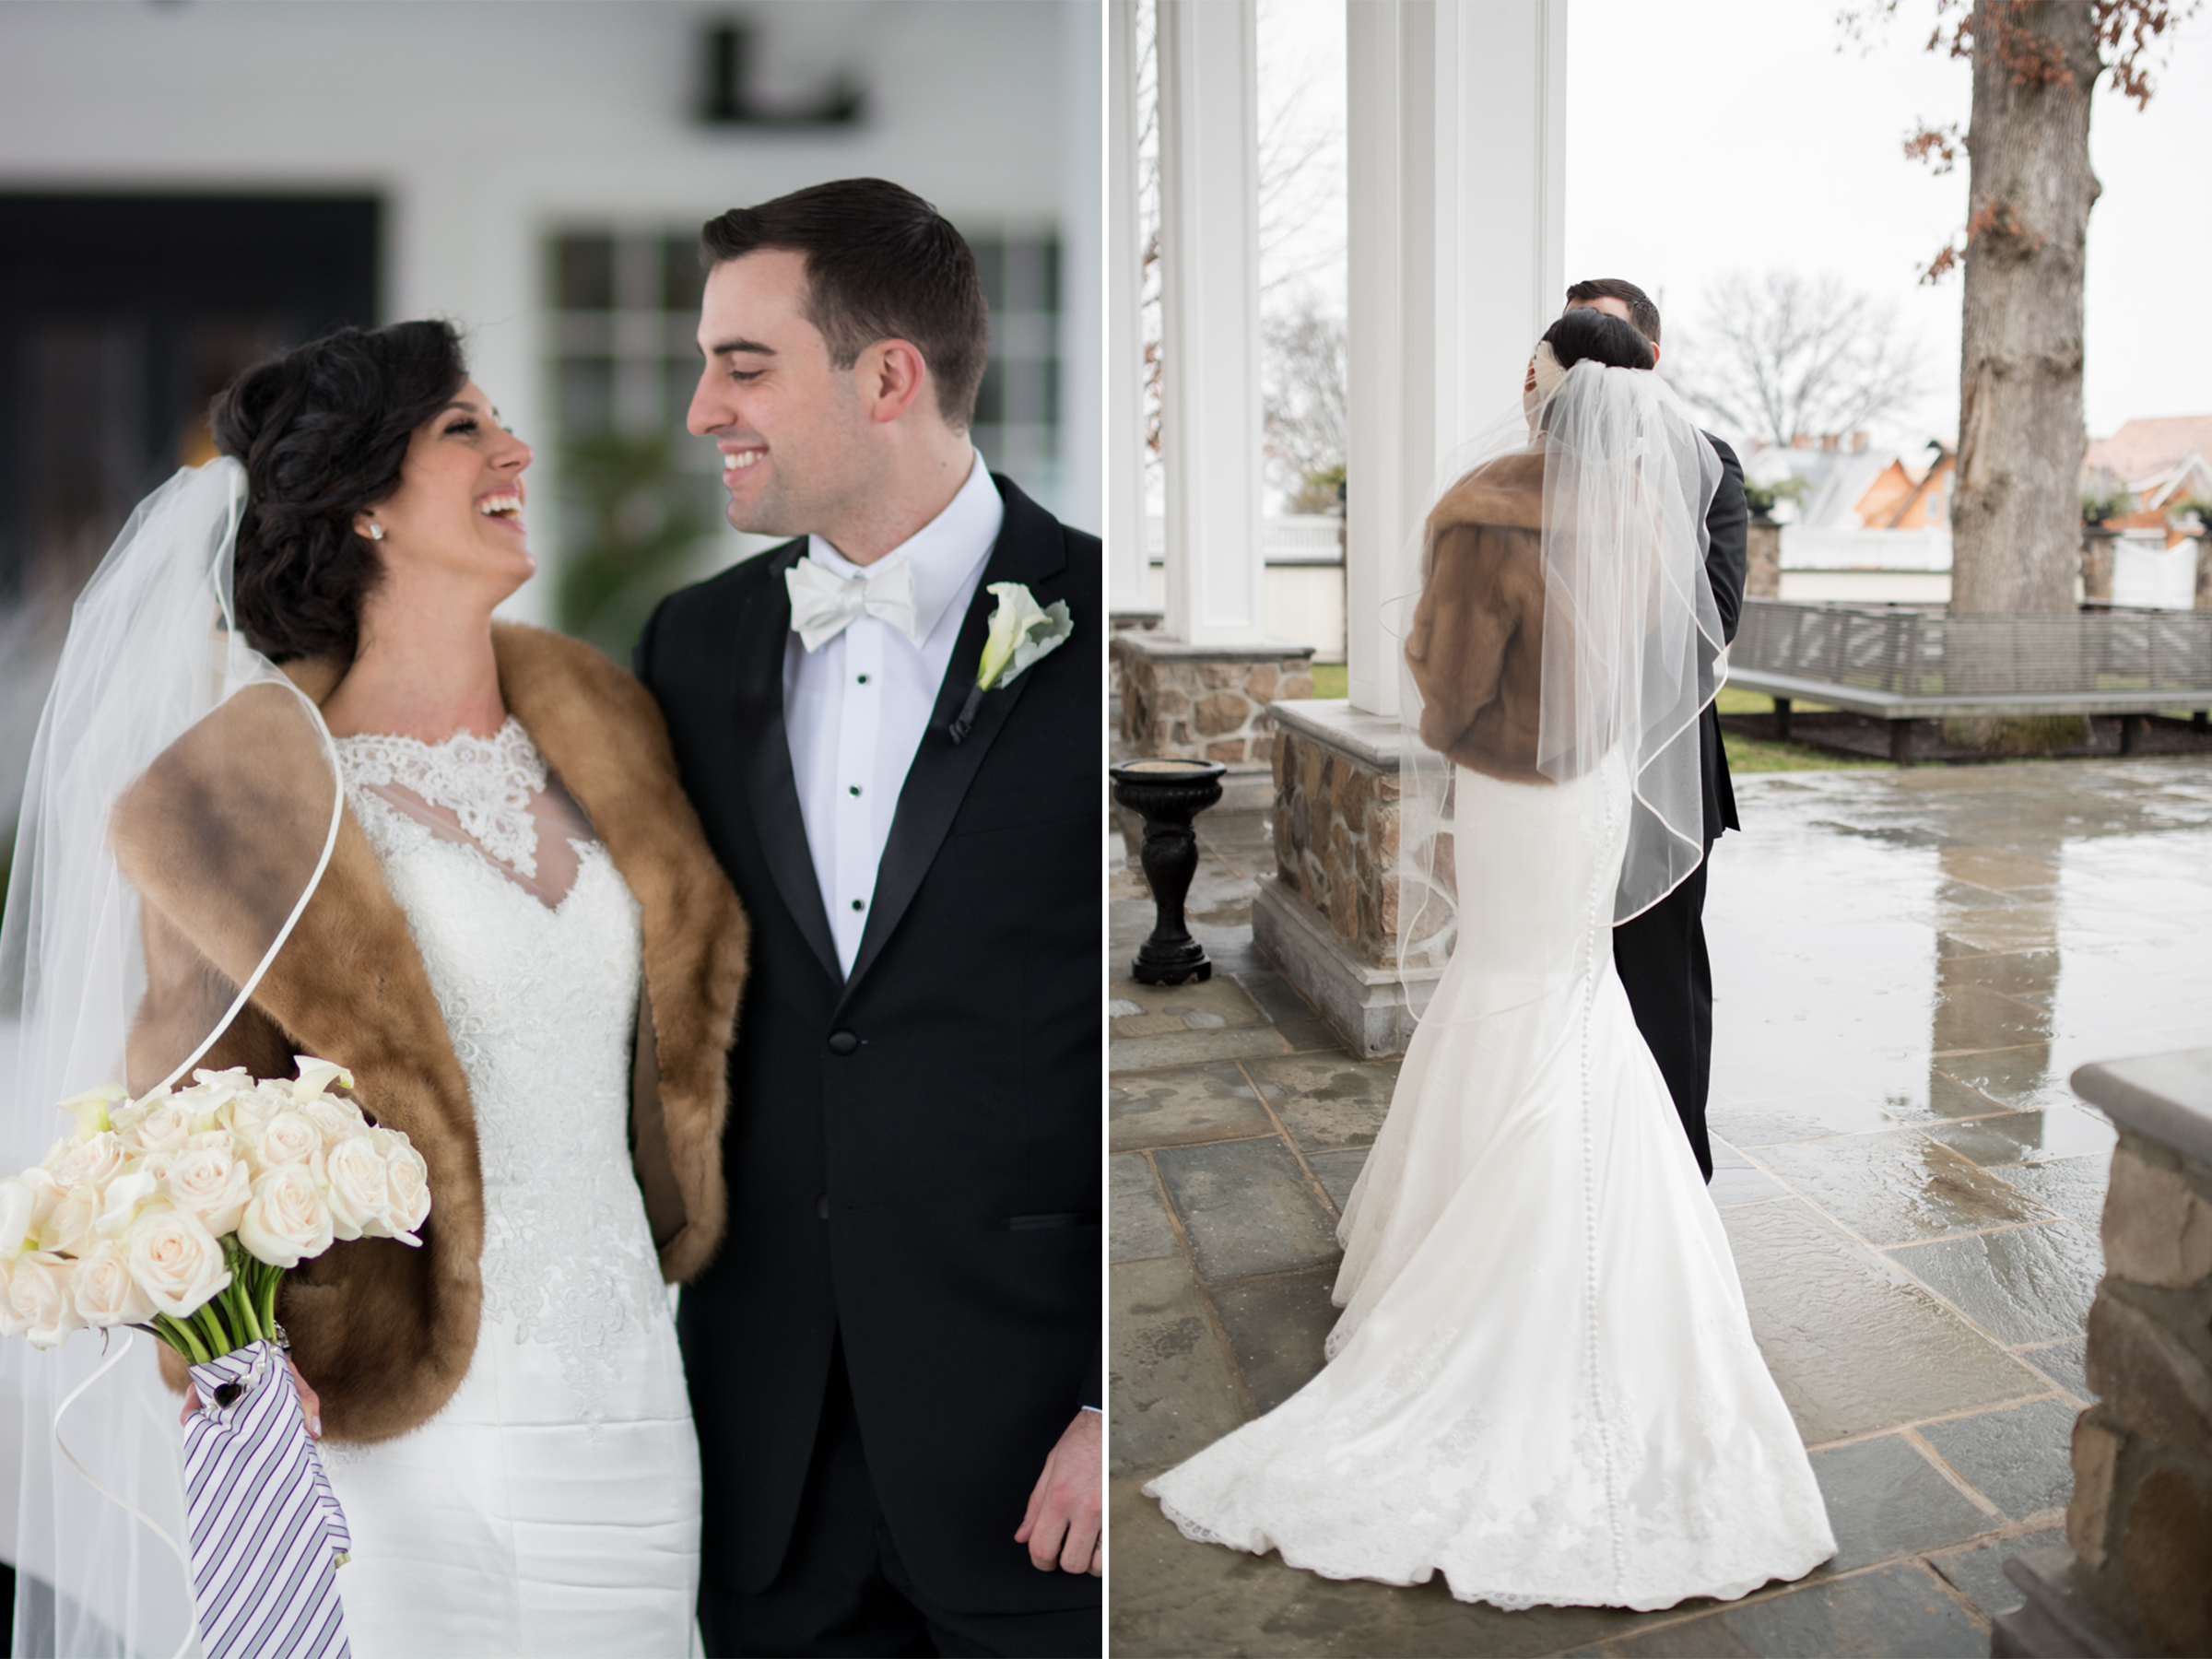 Michelle+Joe- Bride and Groom Laughing - Ryland Inn Winter Wedding - New Jersey - Olivia Christina Photo.jpg